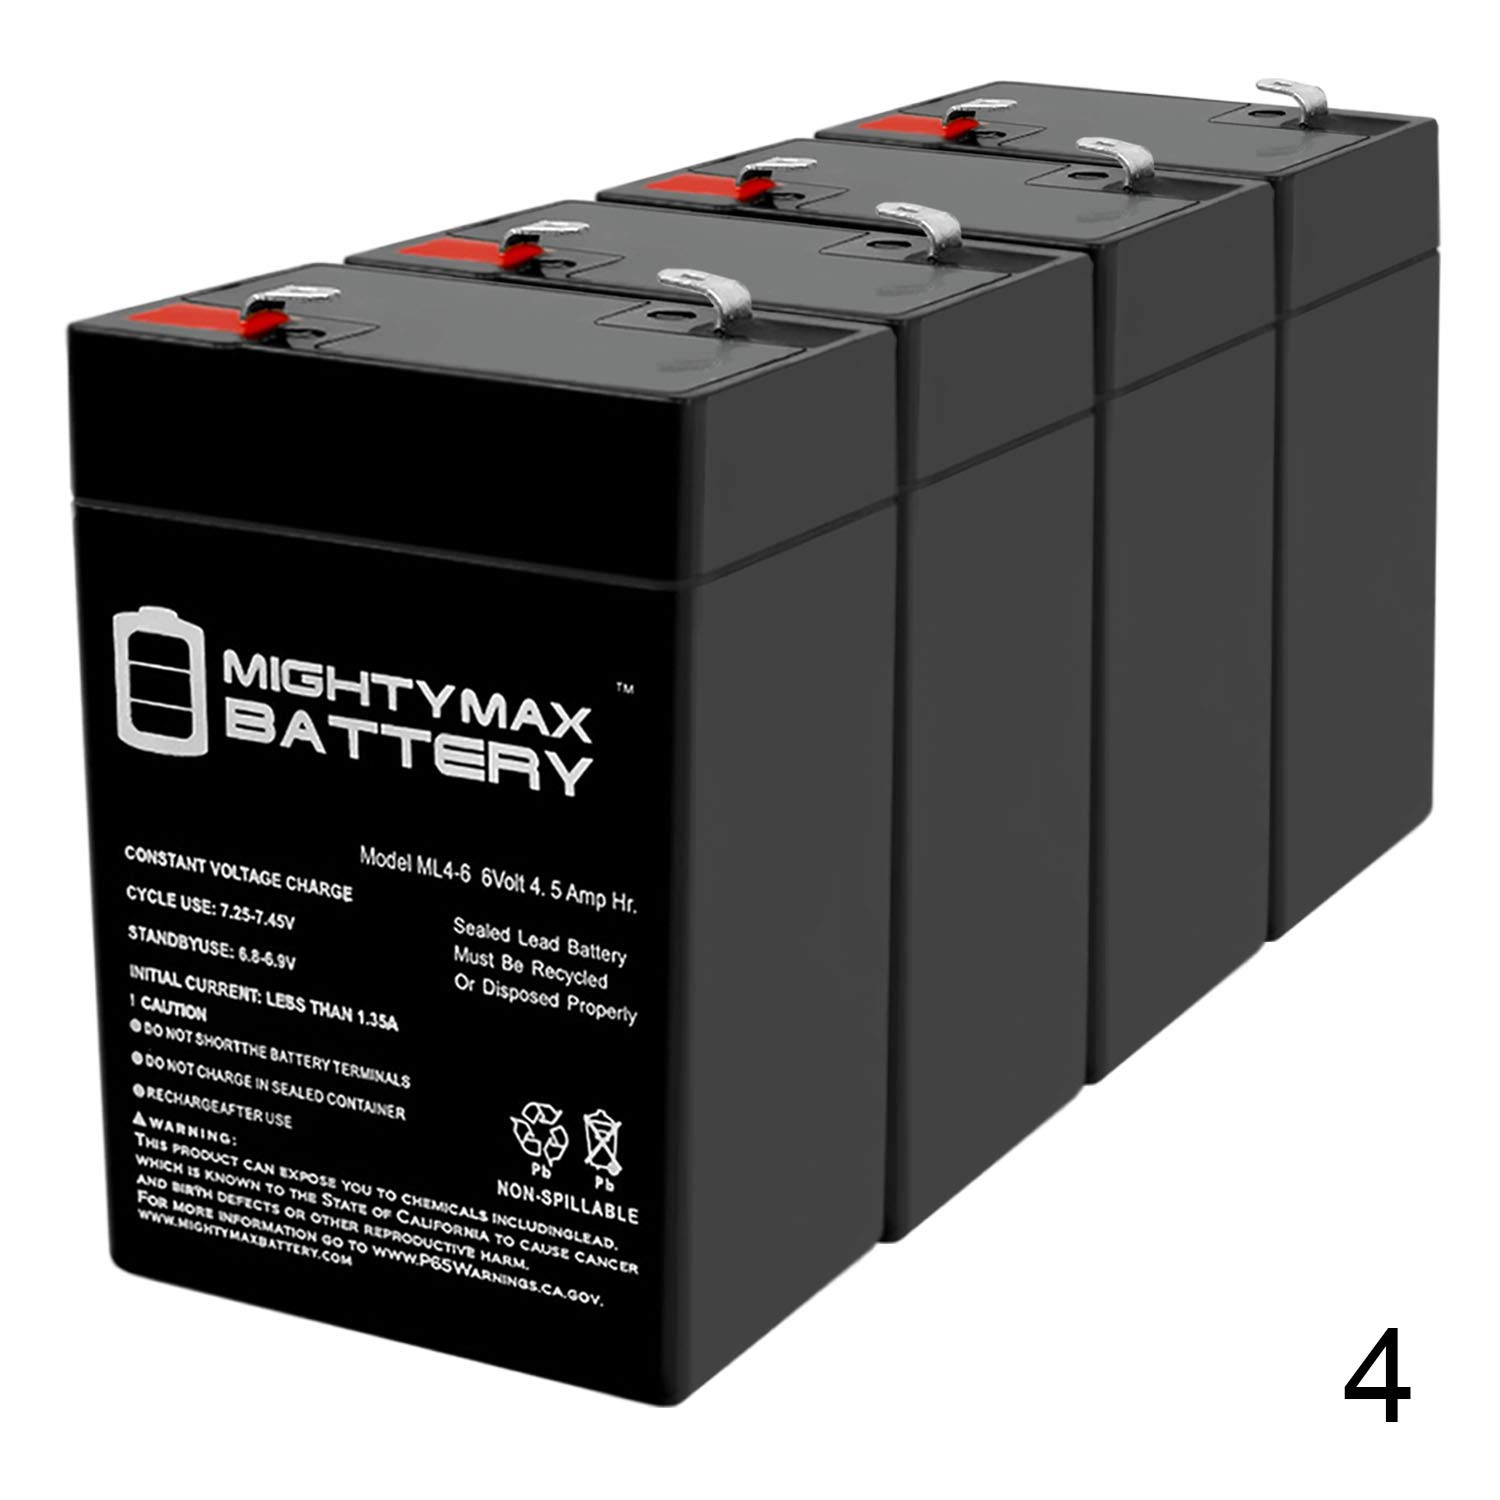 Mighty Max Battery ML4-6 - 6V 4.5AH Replacement Battery for YT-645 with F1 Terminal - 4 Pack Brand Product by Mighty Max Battery